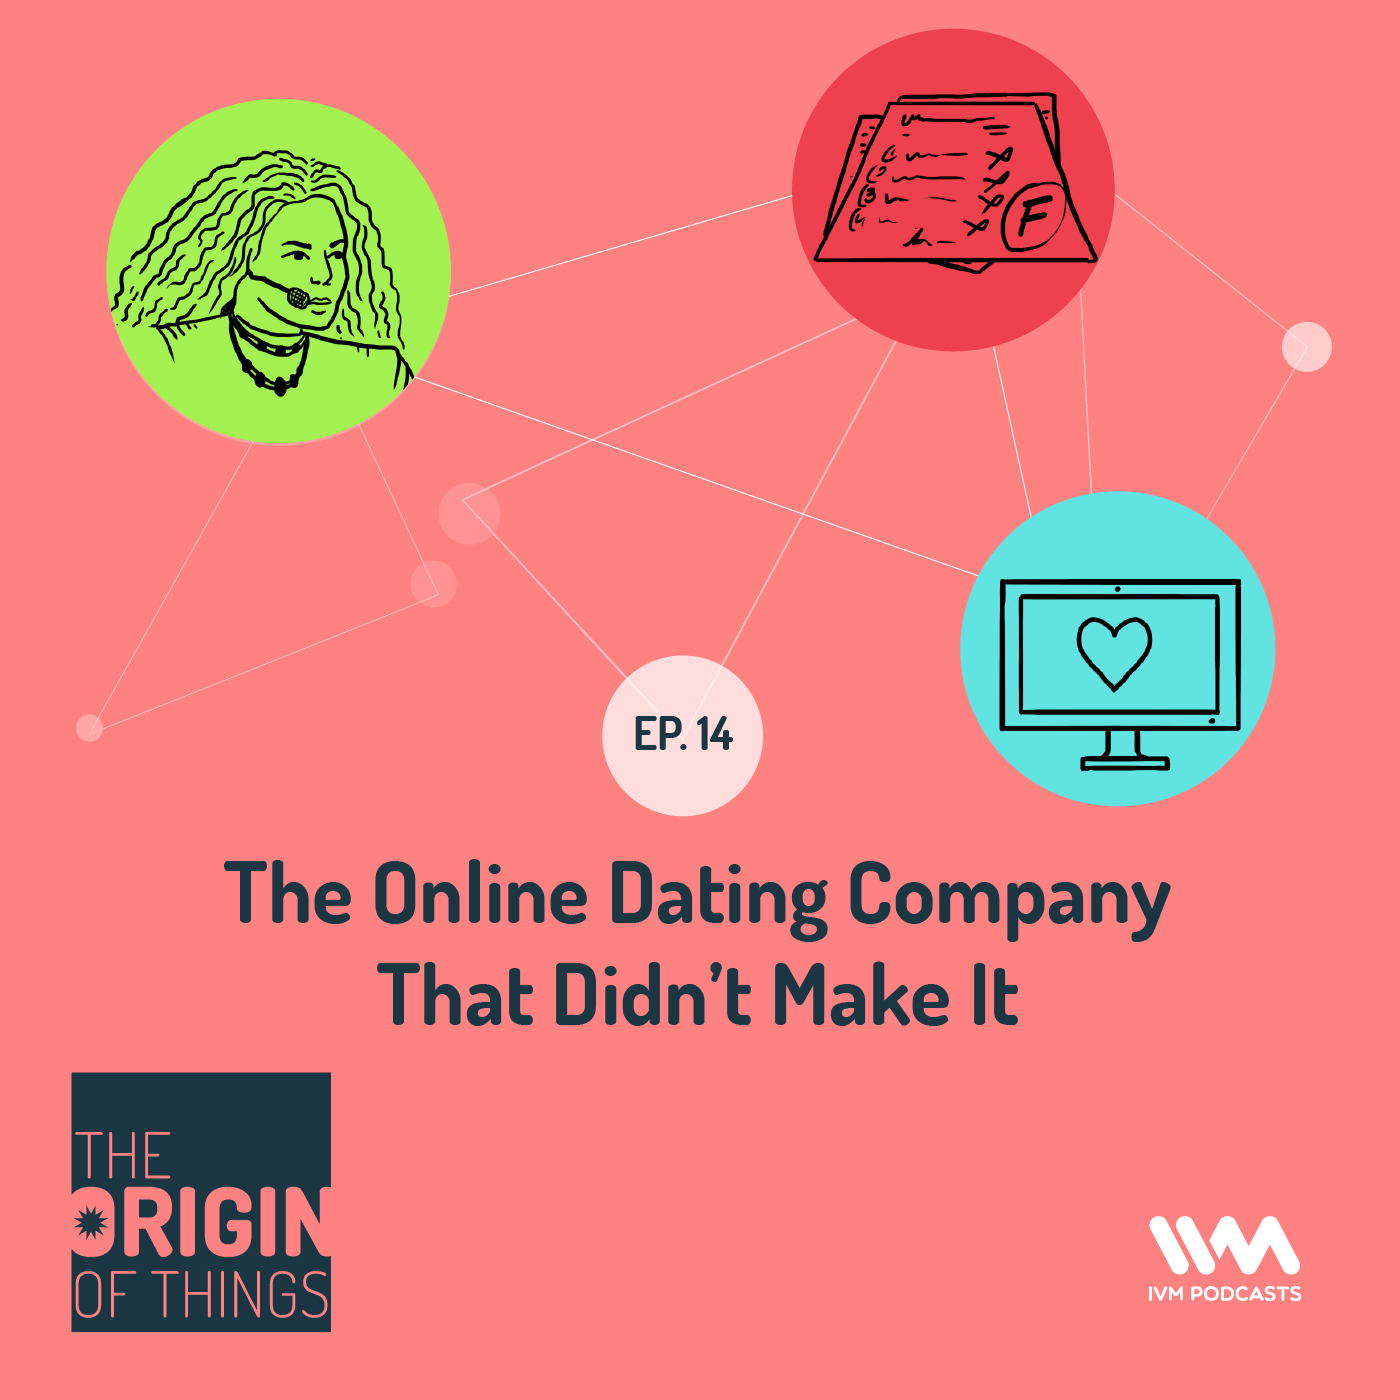 Ep. 14: The Online Dating Company That Didn't Make It.